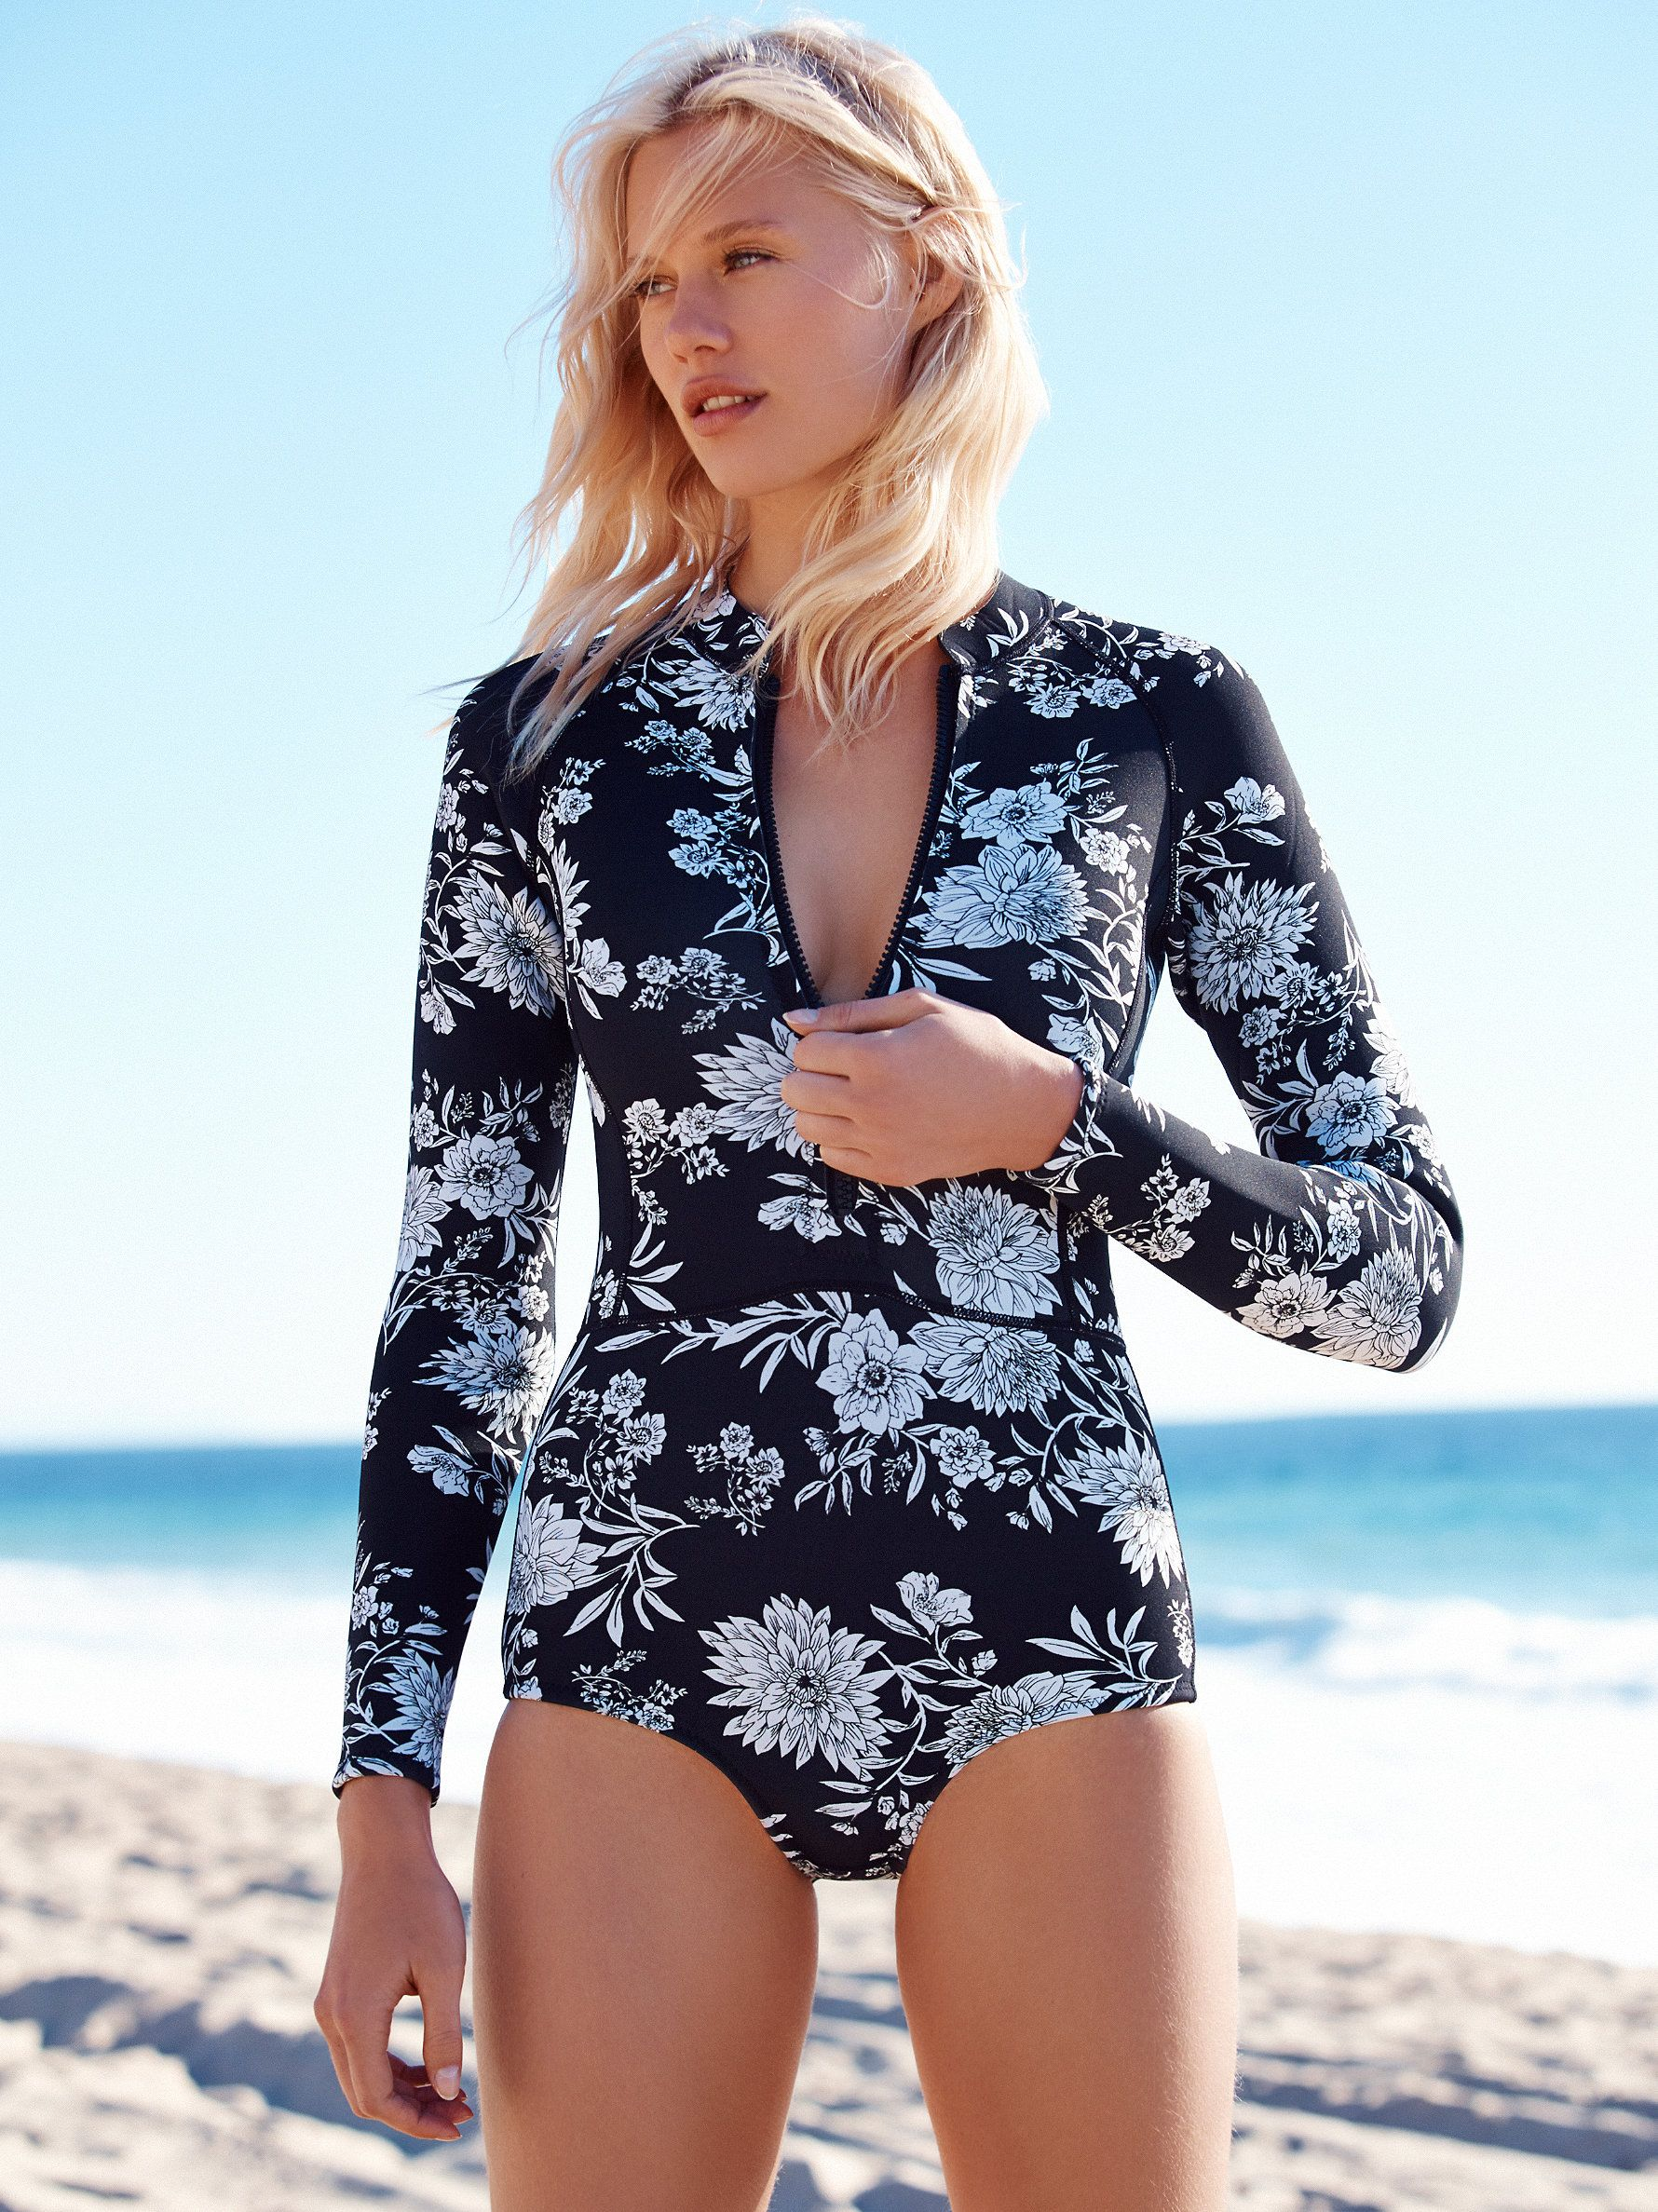 43e78b3e0f Halua Floral Long Sleeve | Beach Bunny | Swimwear, Bikini photos ...